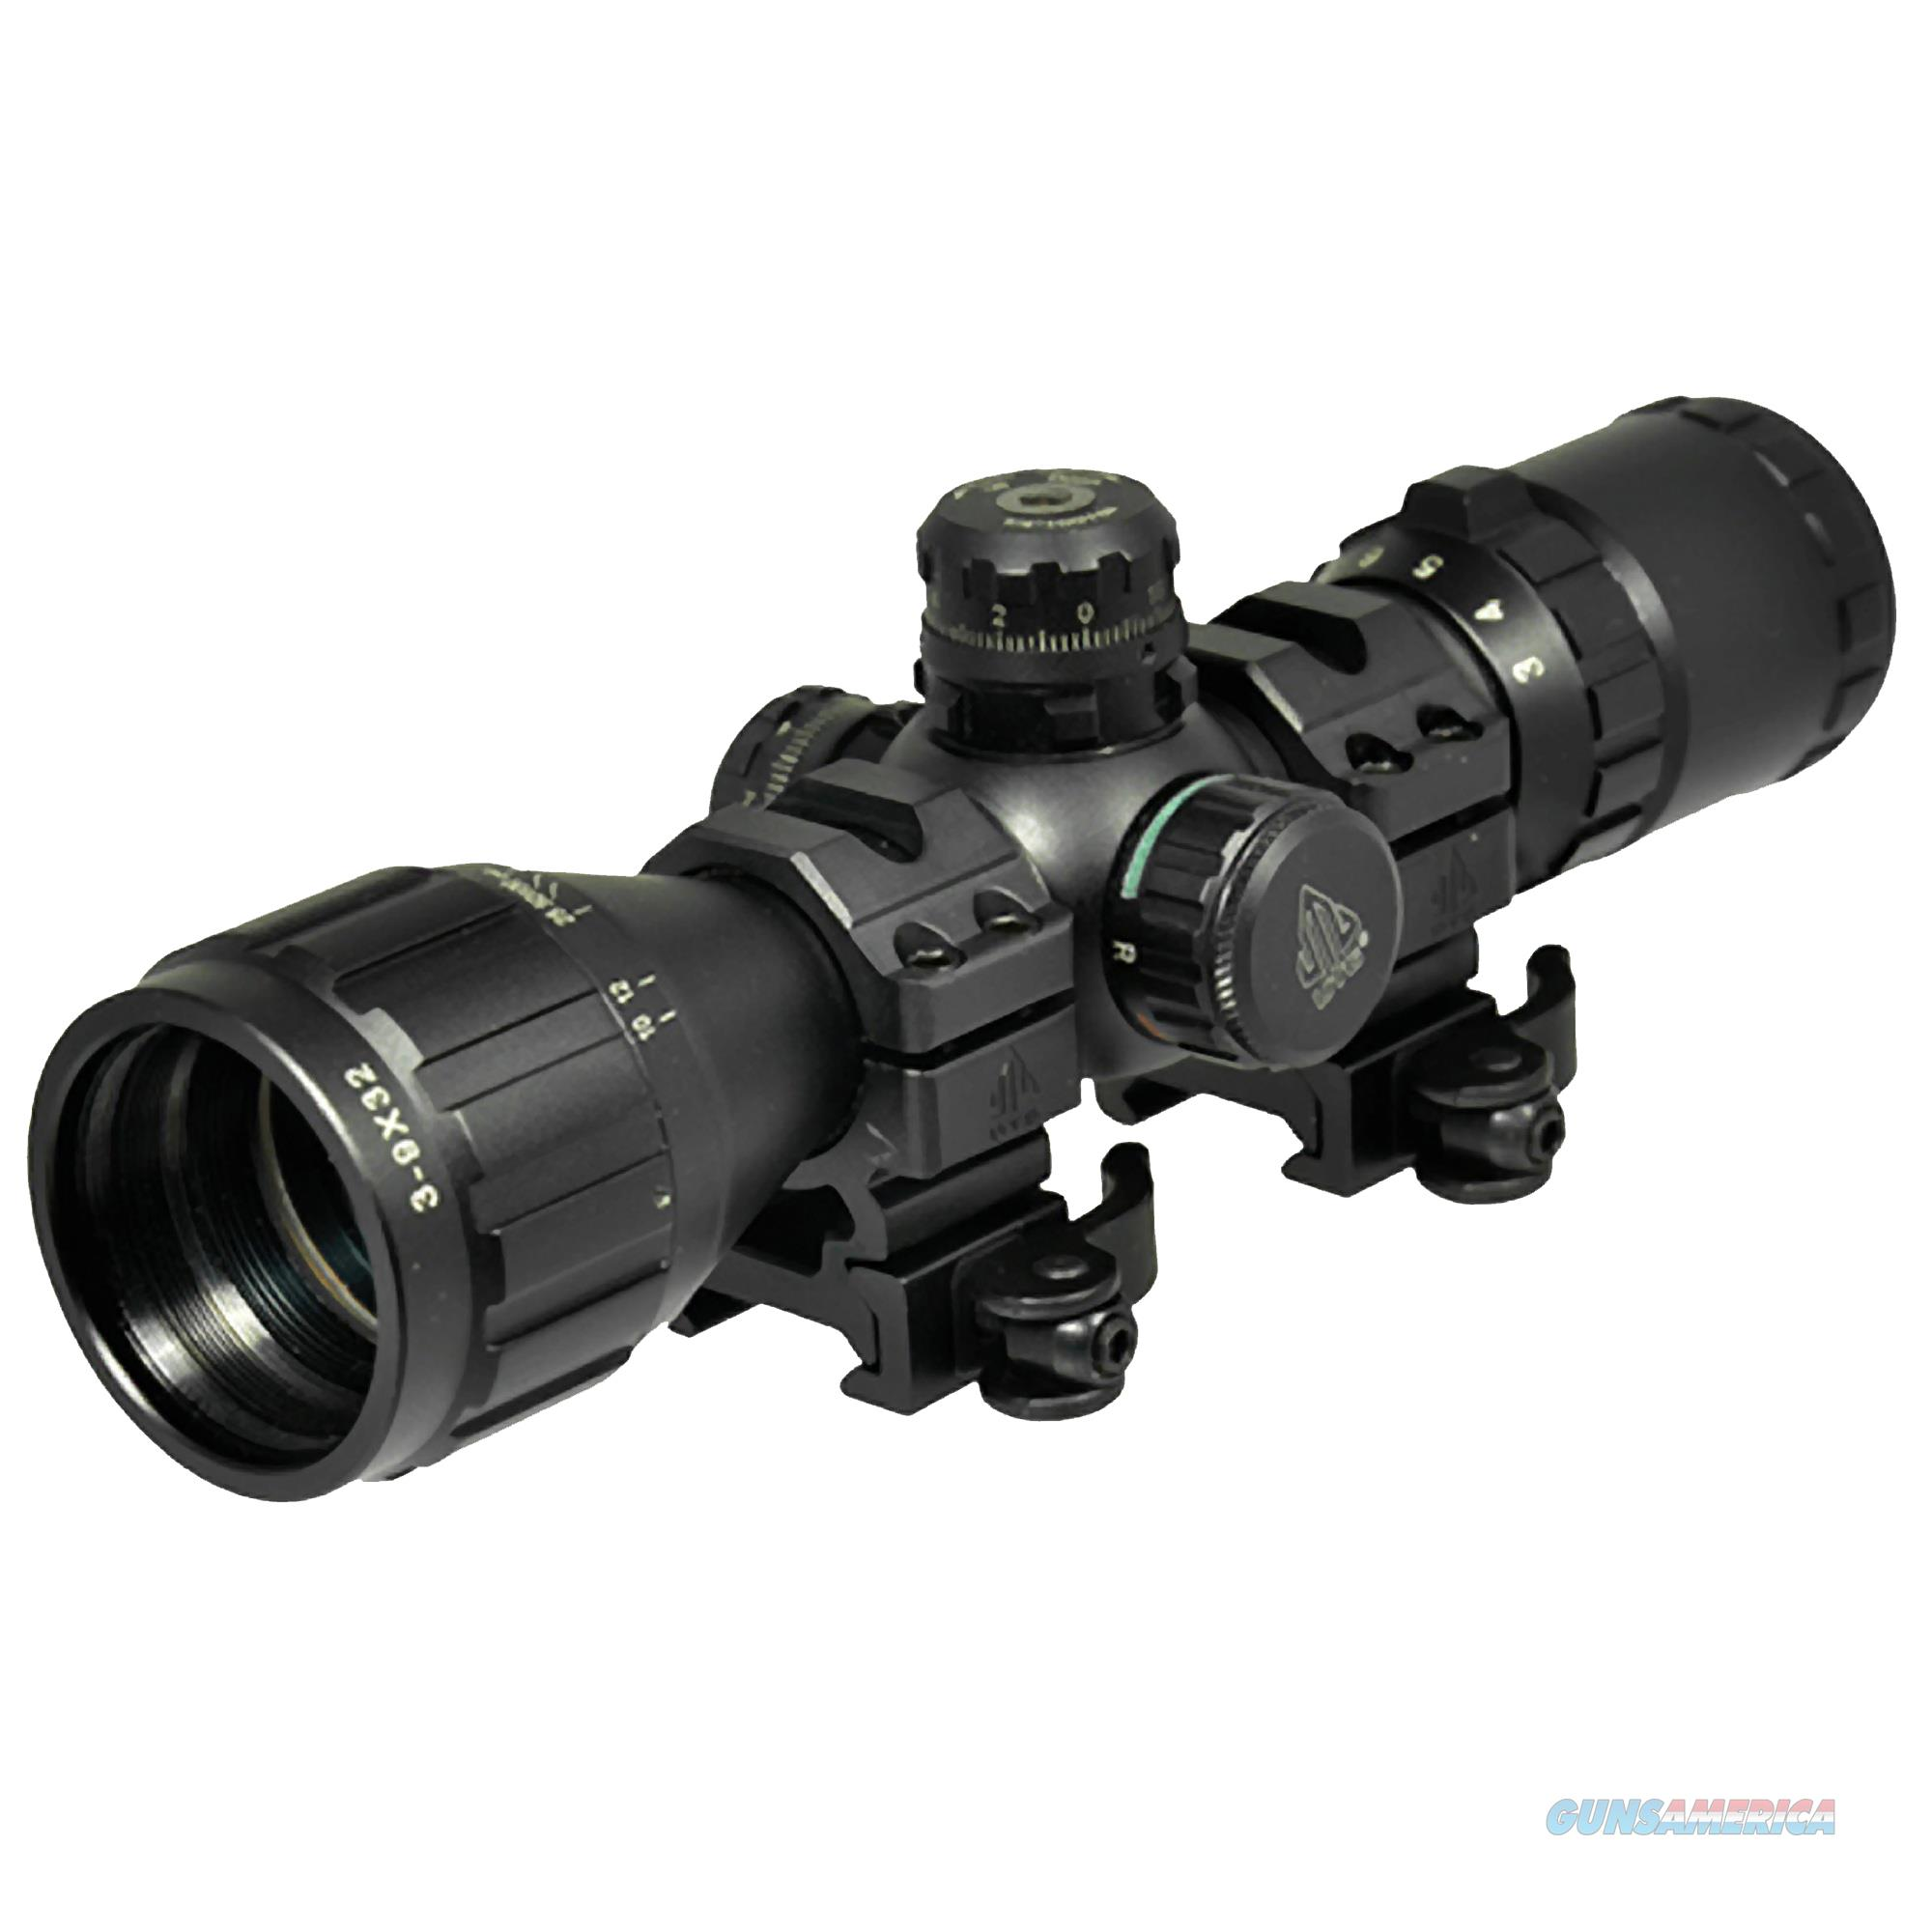 Leapers Utg Bugbuster Scope SCPM392AOLWQ  Non-Guns > Scopes/Mounts/Rings & Optics > Mounts > Other